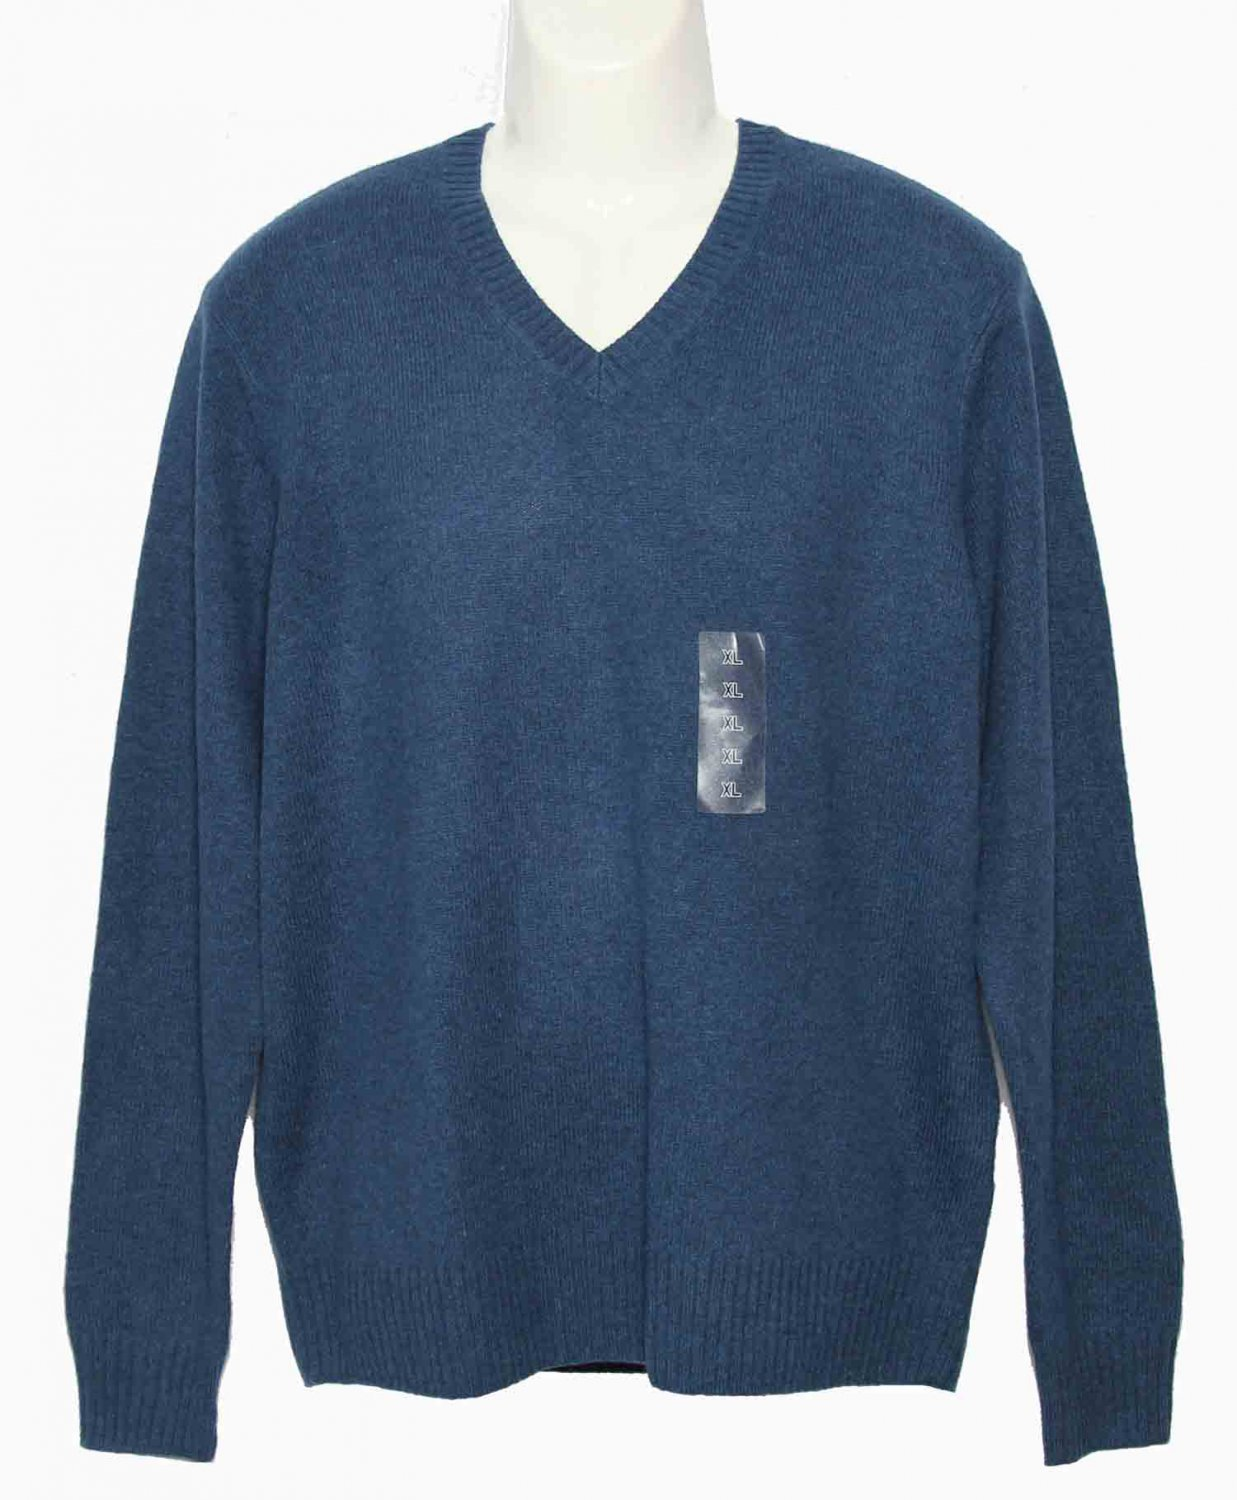 Mens Uniqlo Lambswool Blend Sweater Vneck Blue Size Slim XL